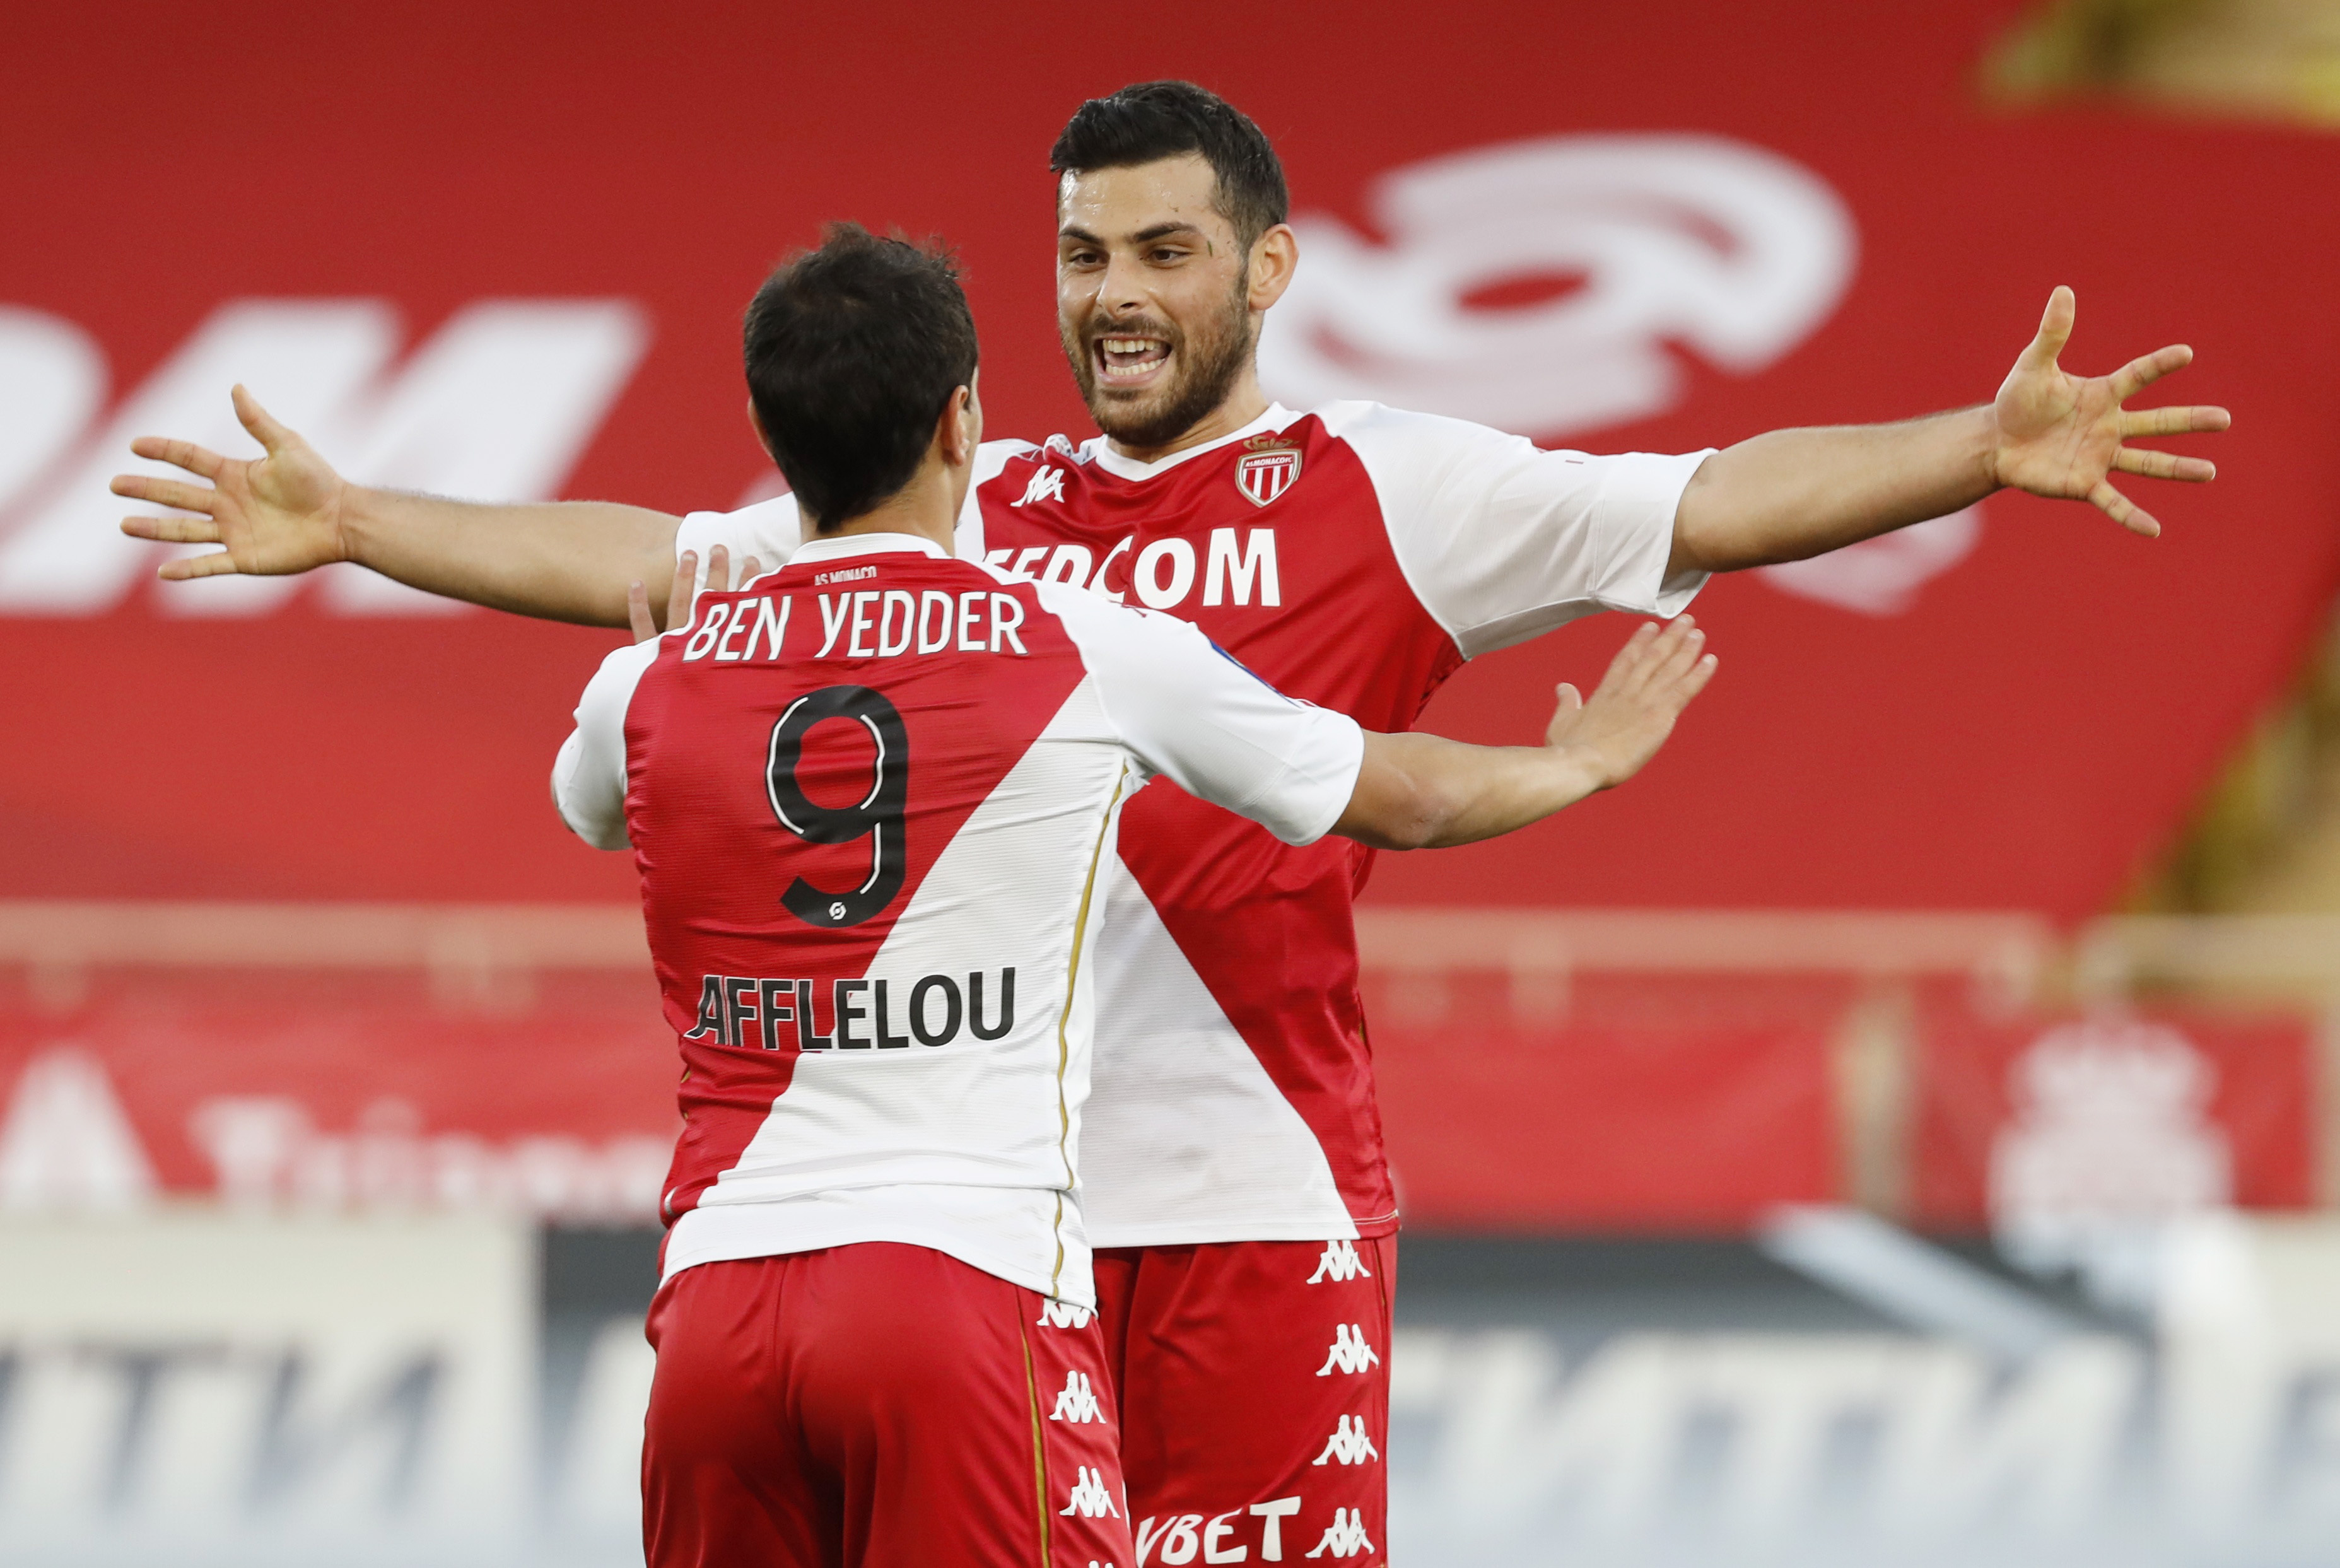 Ben Yedder-Volland: the shattering duo that carries Monaco - Ligue 1 -  Archysport